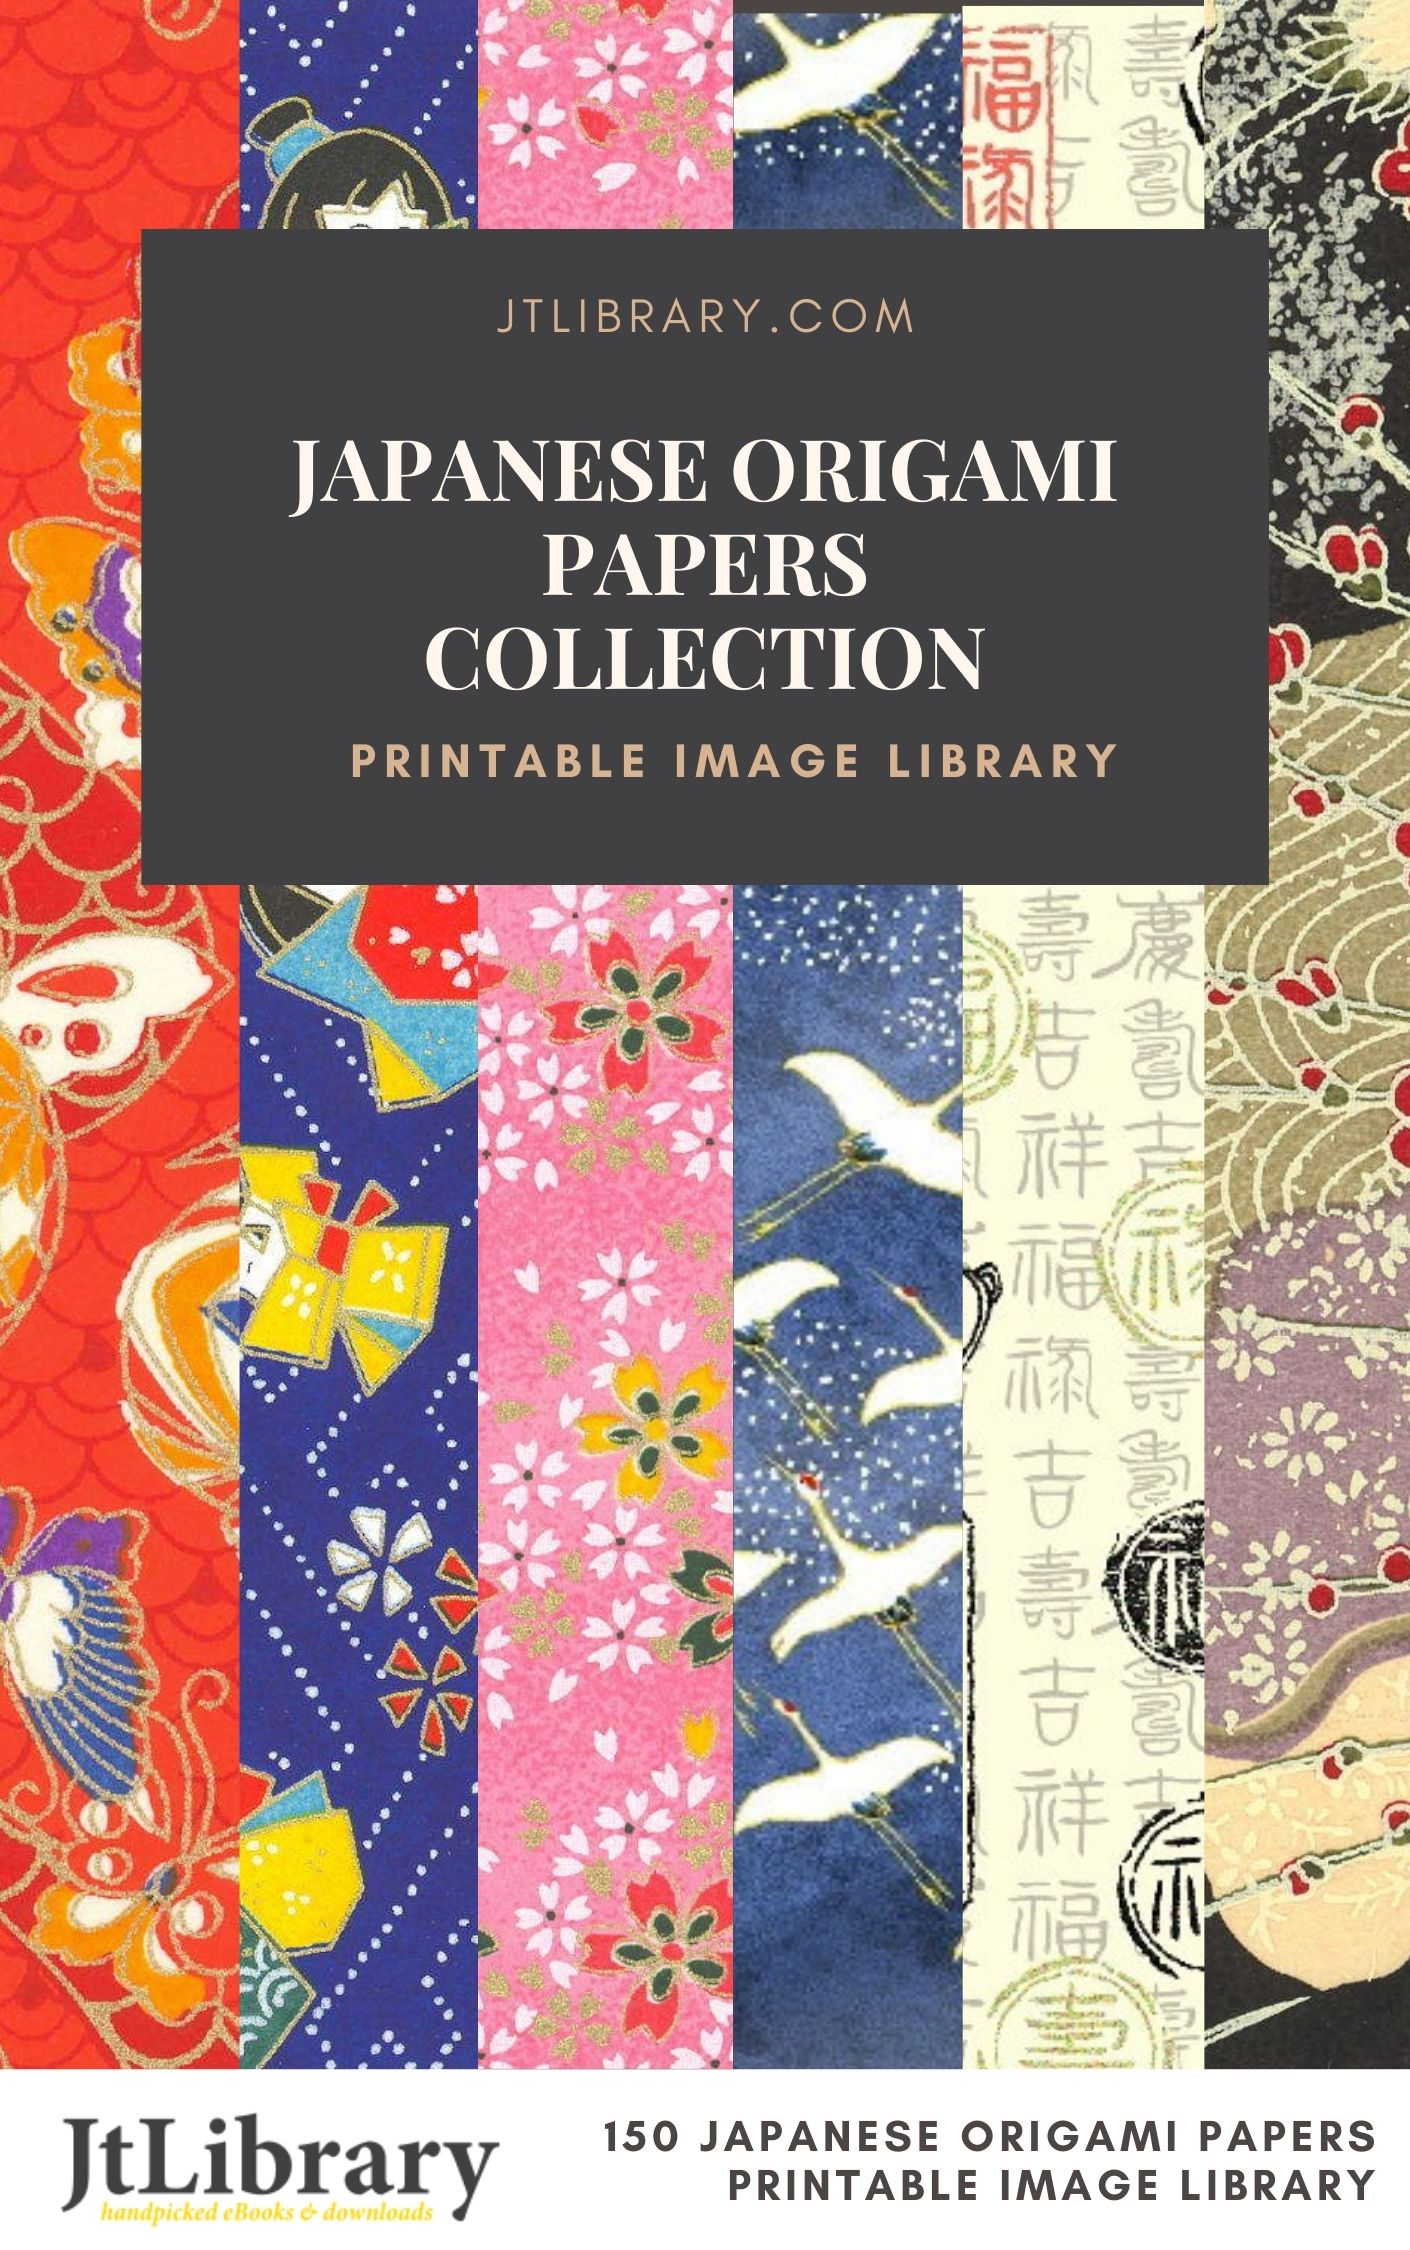 Japanese Origami Papers & Patterns Collection (Printable Image Library)